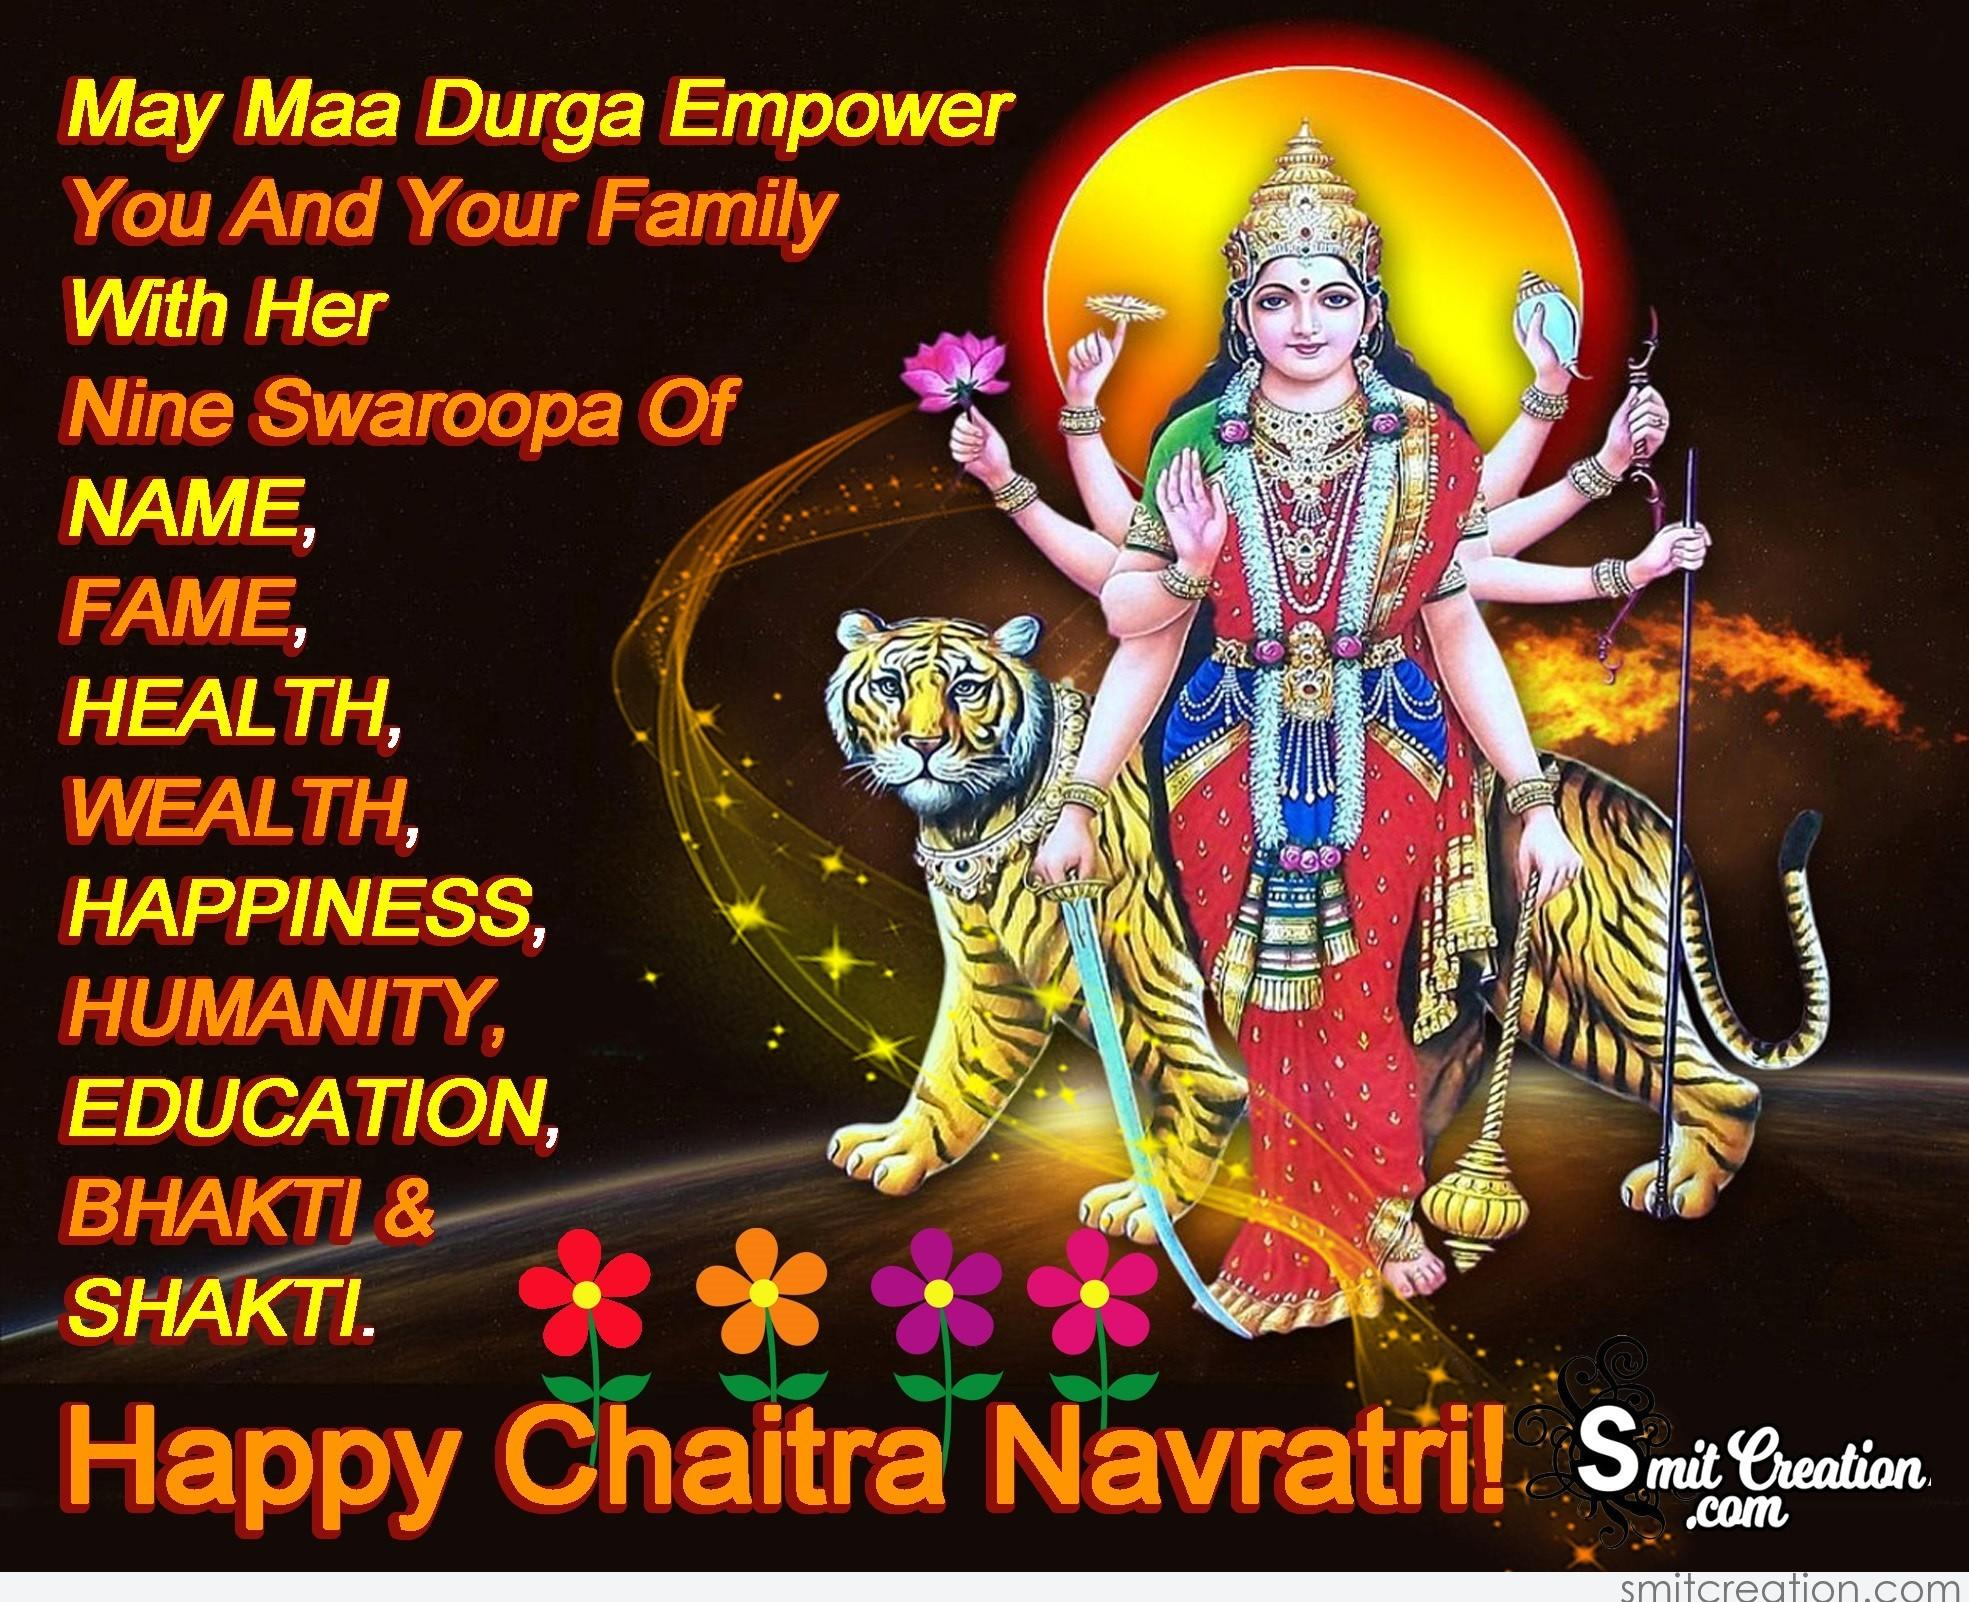 Chaitra Navratri Pictures And Graphics Smitcreation